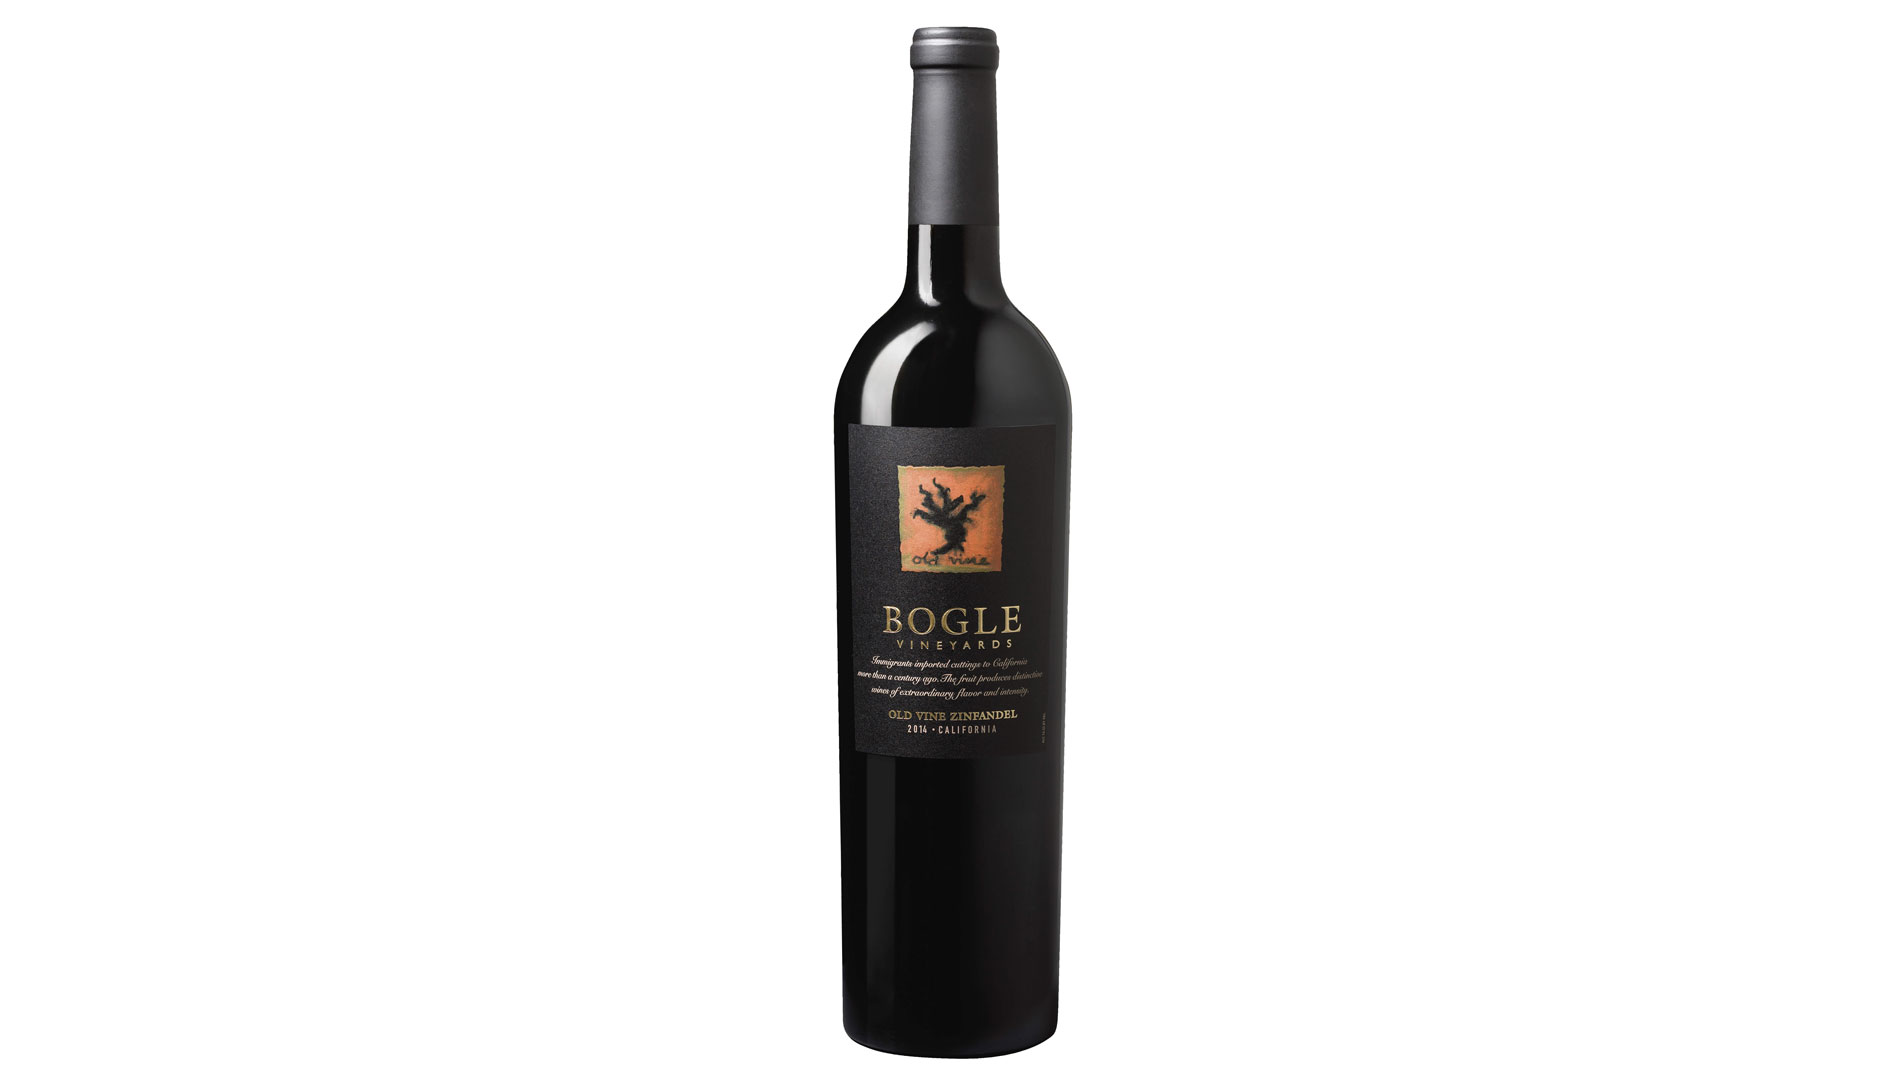 可怕的人或物 Old Vine California Zinfandel ($12)